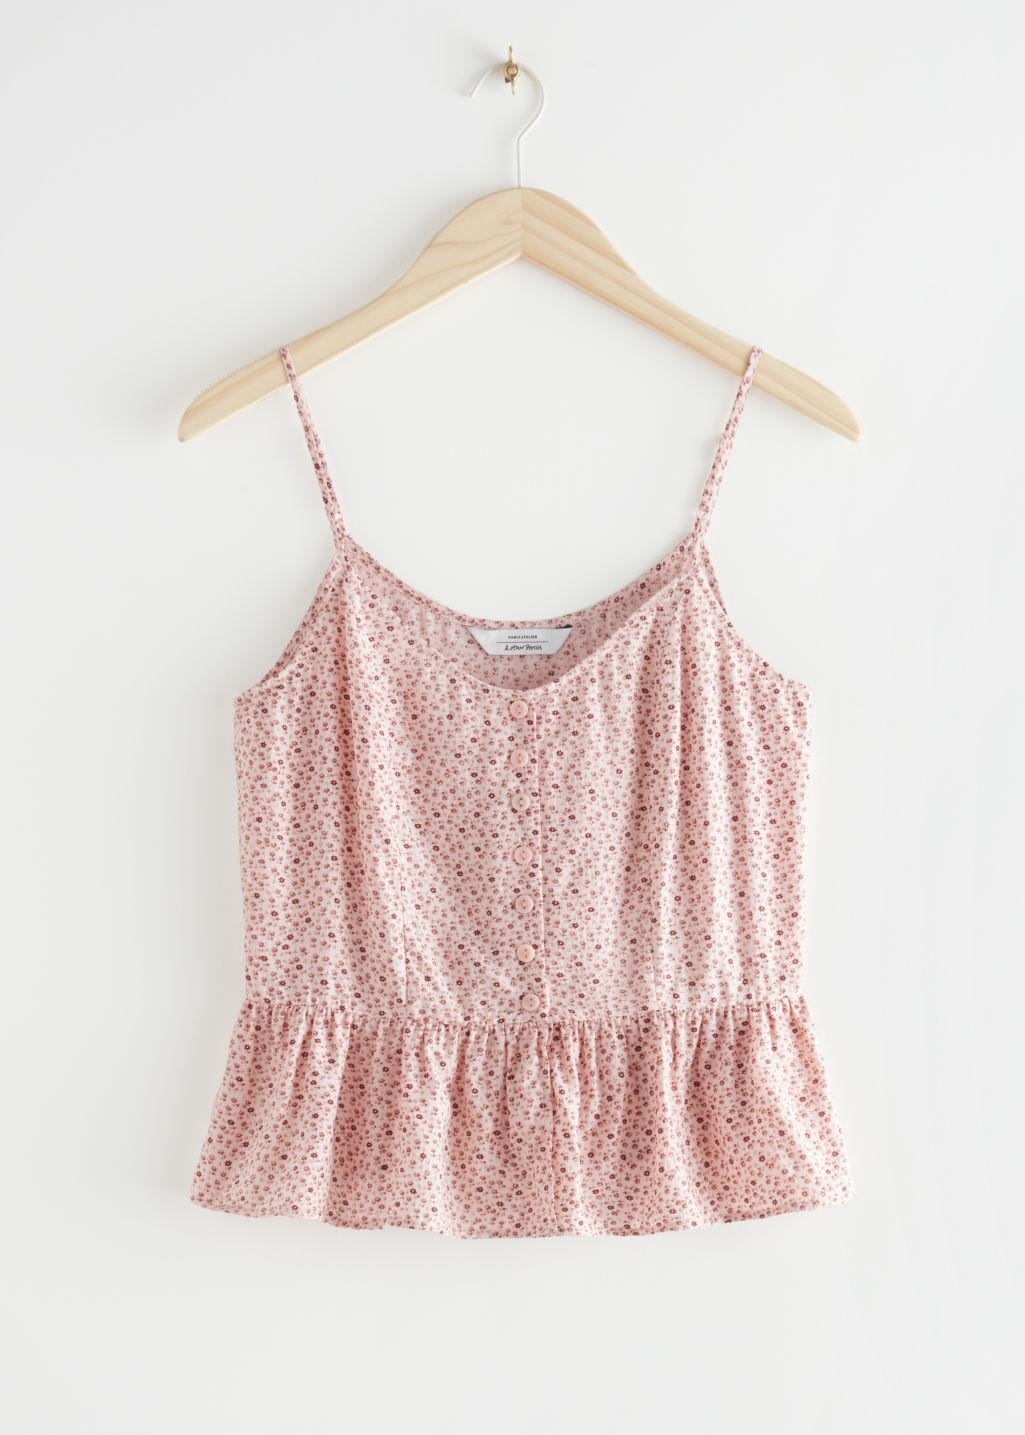 Buttoned Jacquard Strap Top